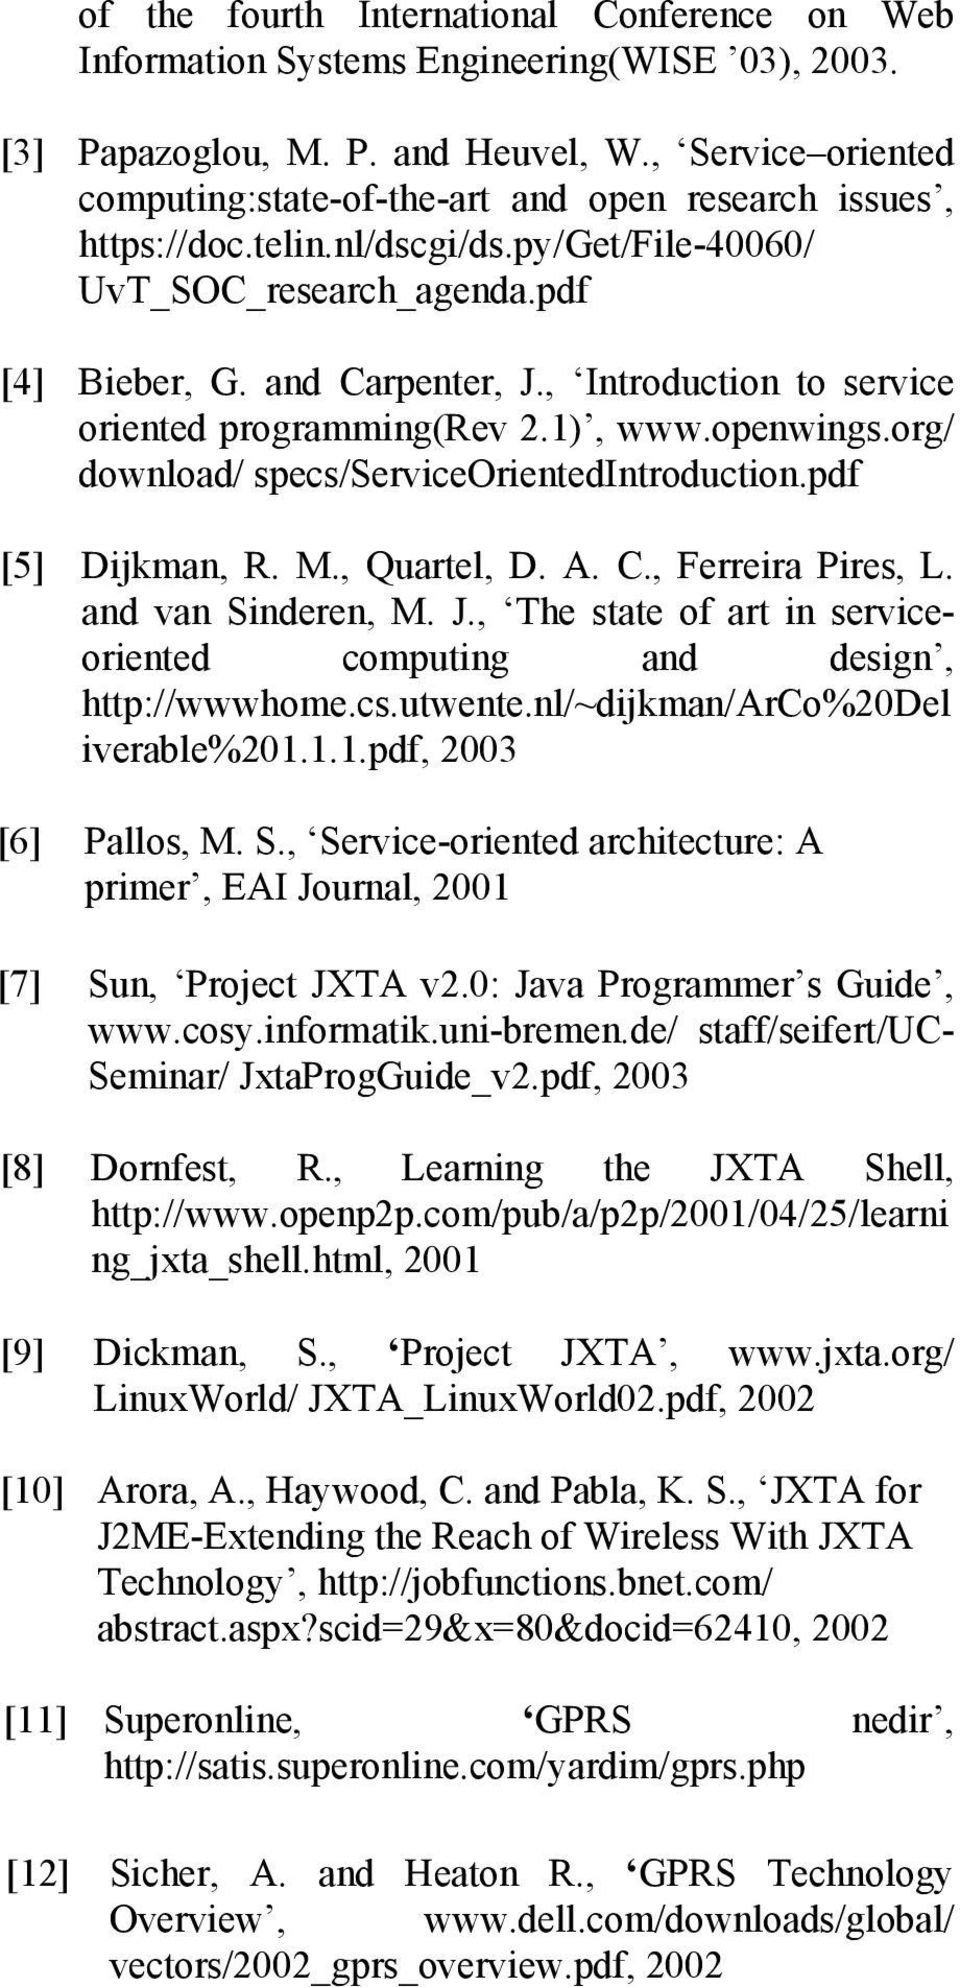 , Introduction to service oriented programming(rev 2.1), www.openwings.org/ download/ specs/serviceorientedintroduction.pdf [5] Dijkman, R. M., Quartel, D. A. C., Ferreira Pires, L.